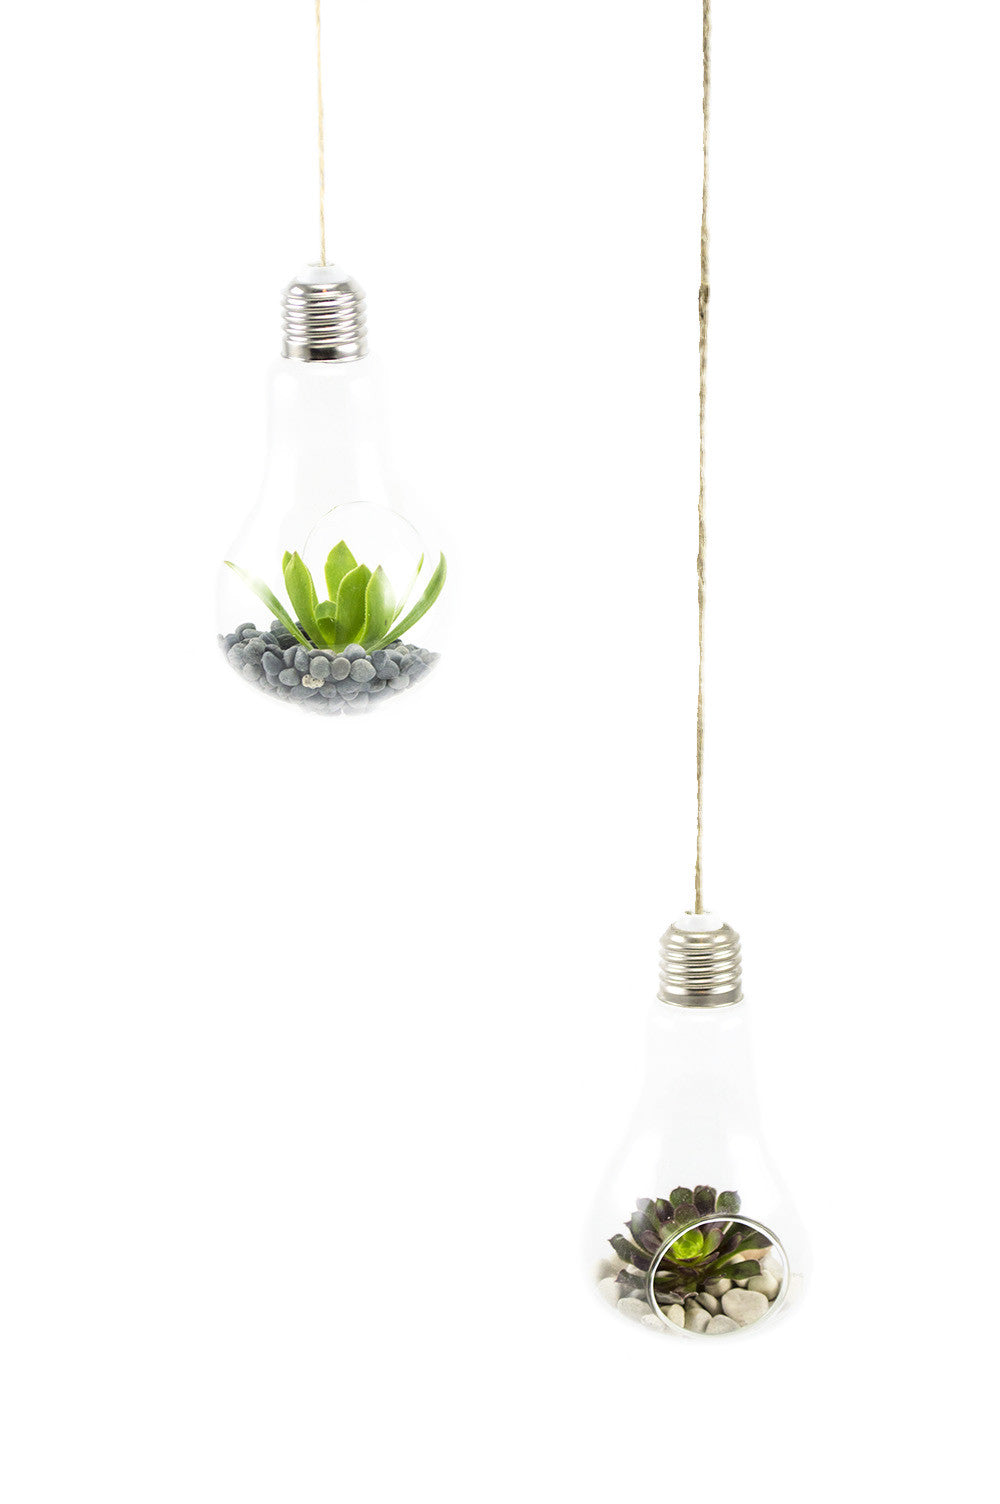 Hanging Light Bulb Terrarium Bowen Kenneth